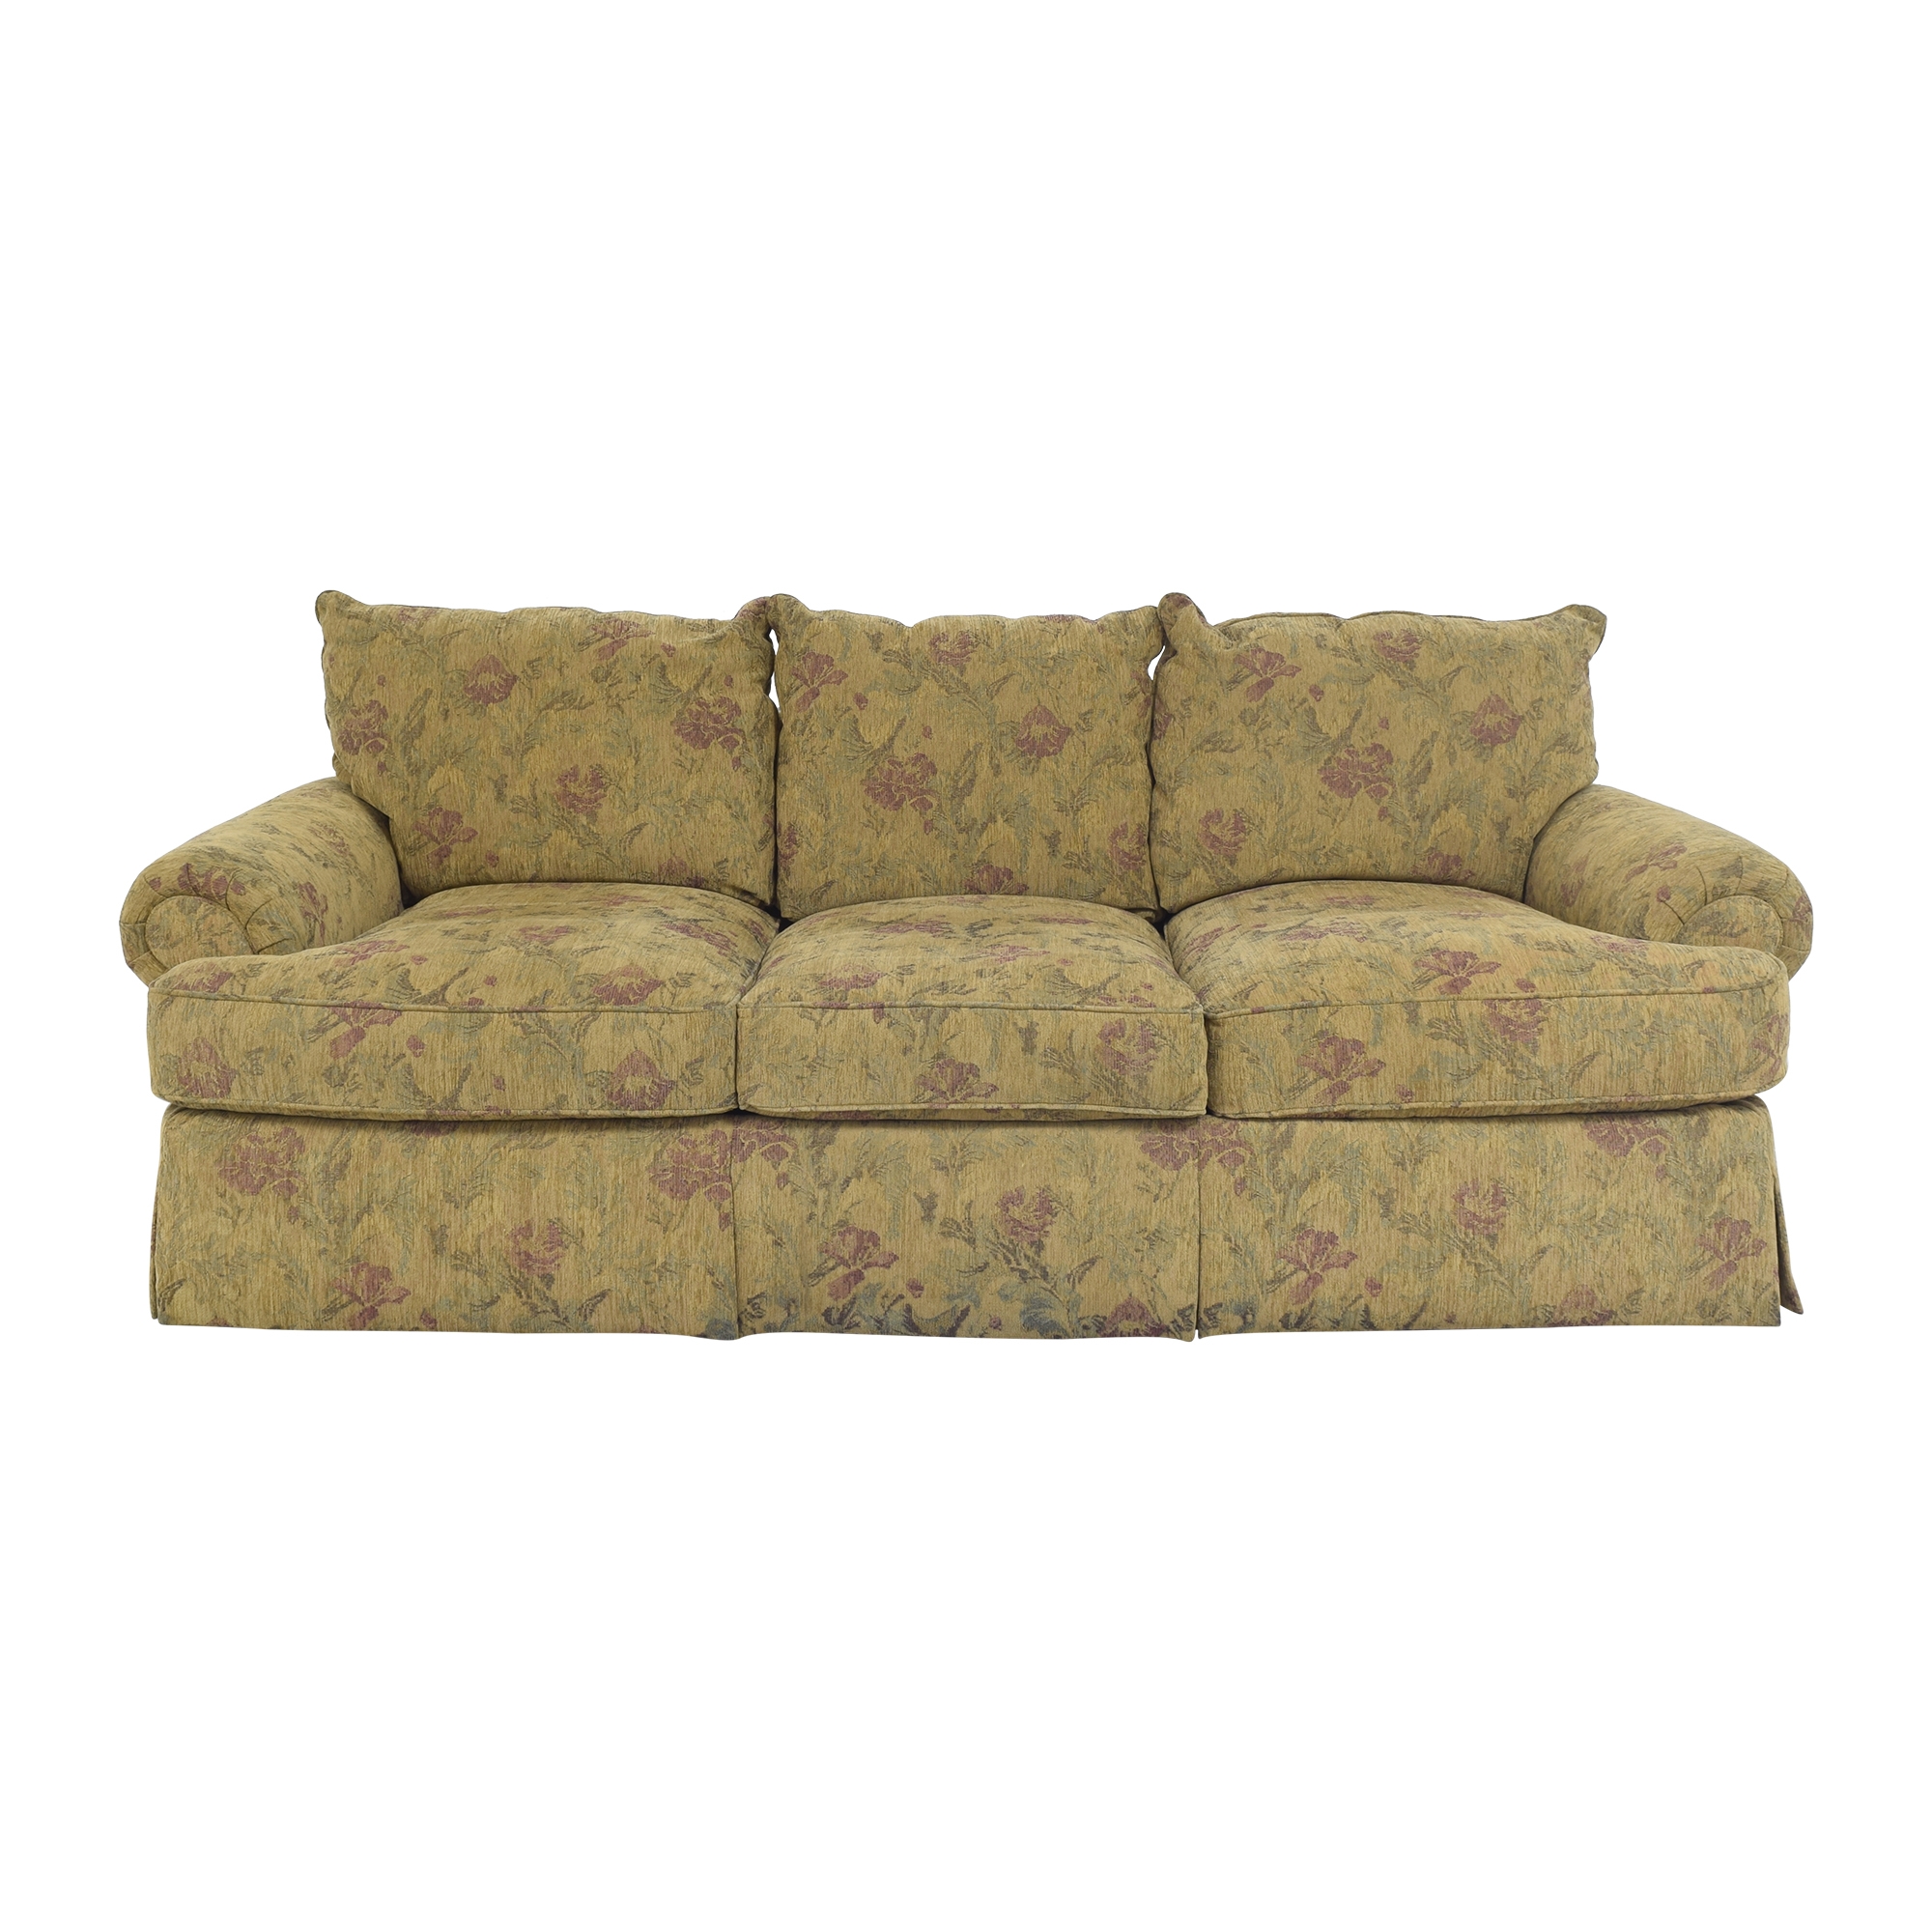 Thomasville Thomasville Floral Three Cushion Sofa nyc